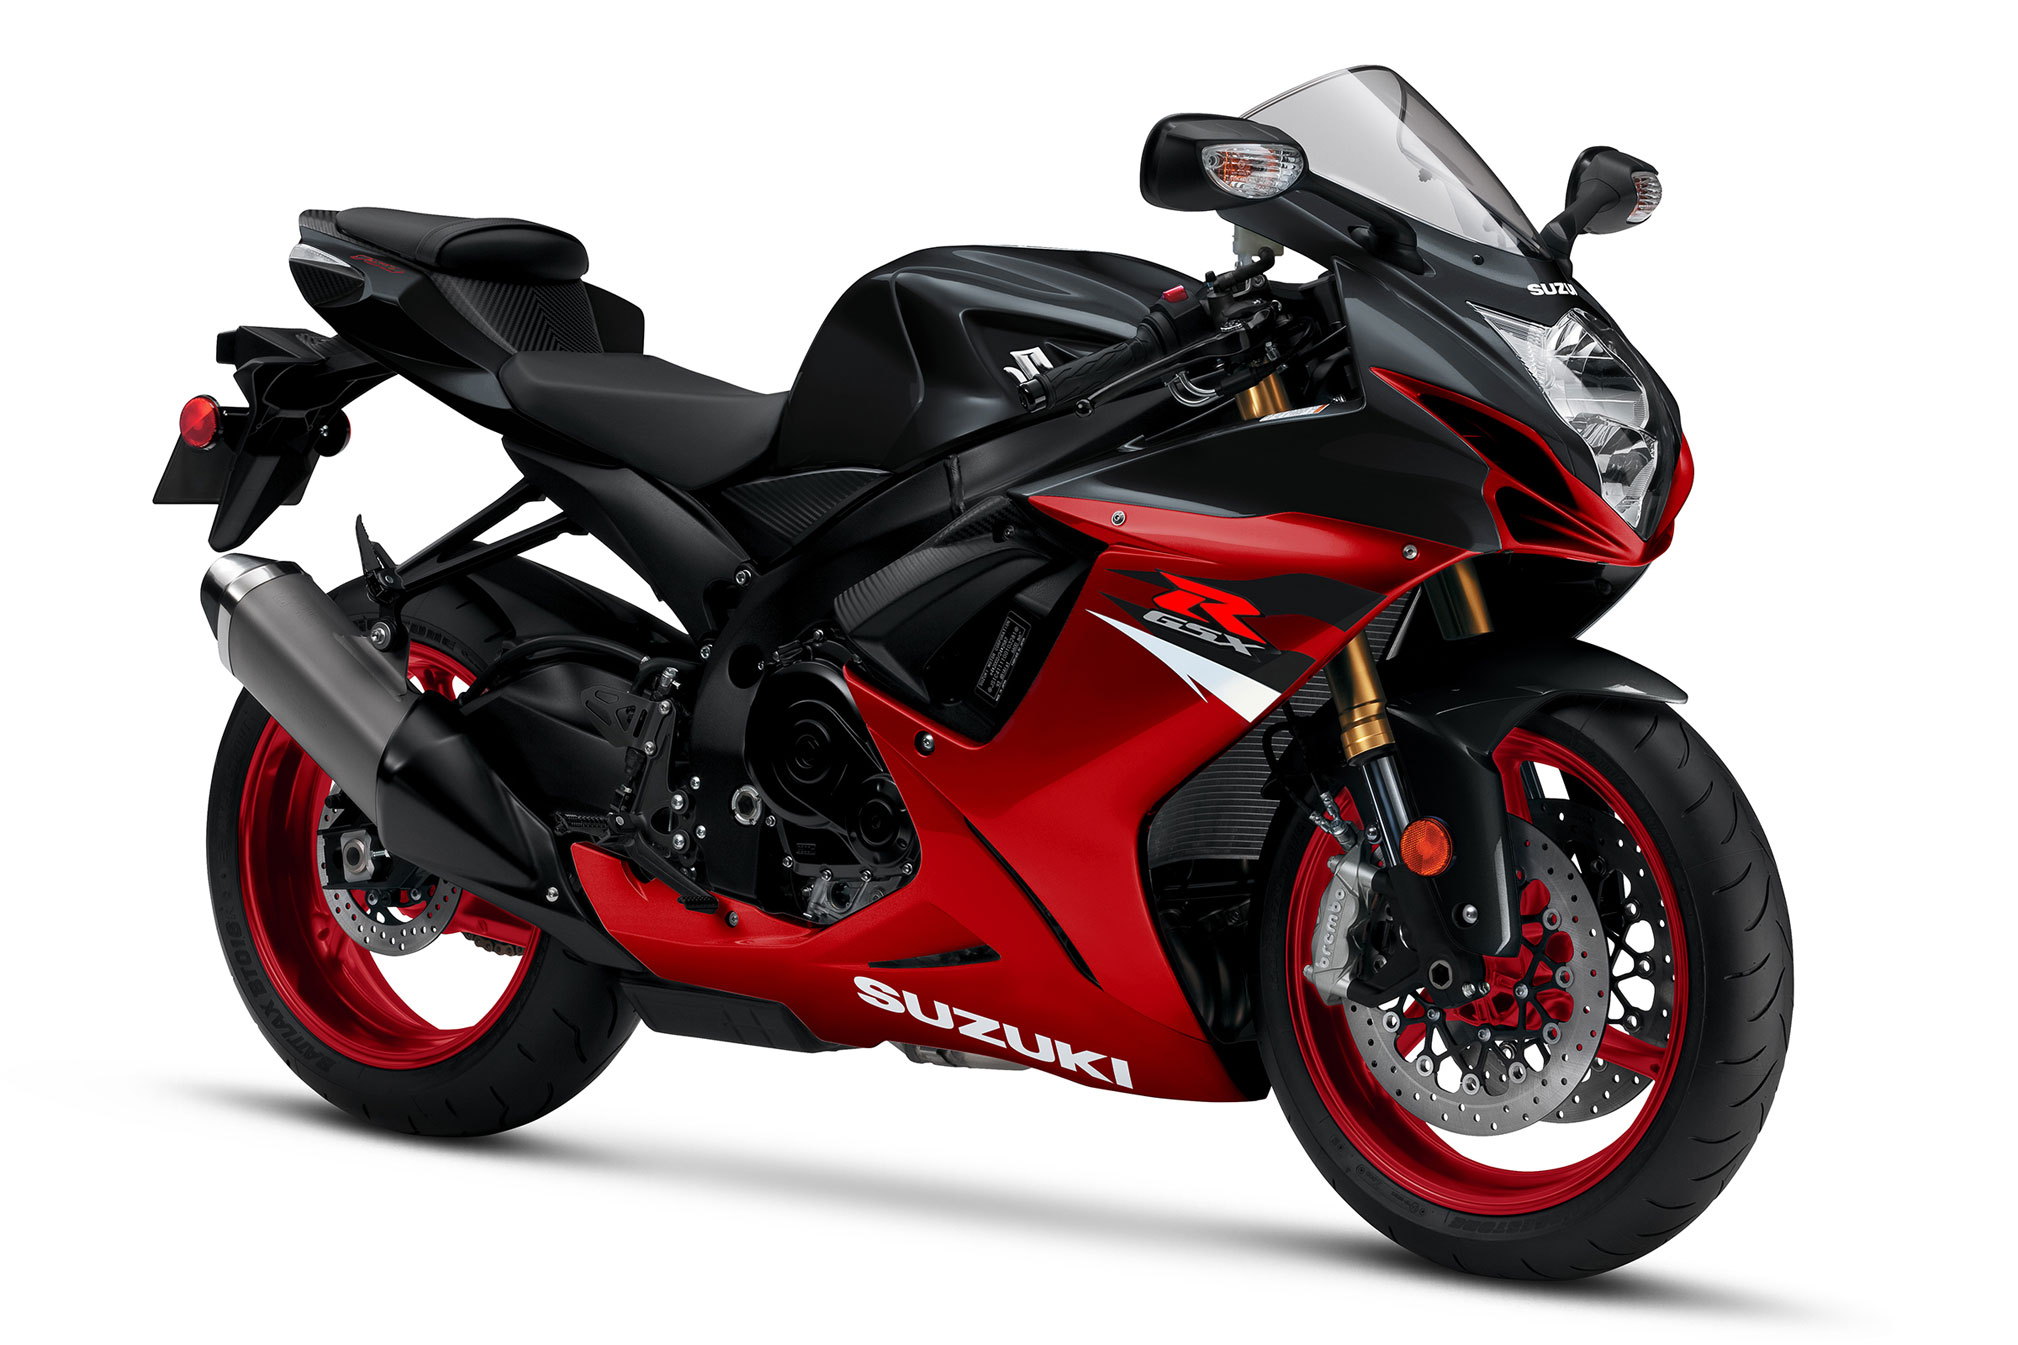 Suzuki R Gsx Price In Pakistan